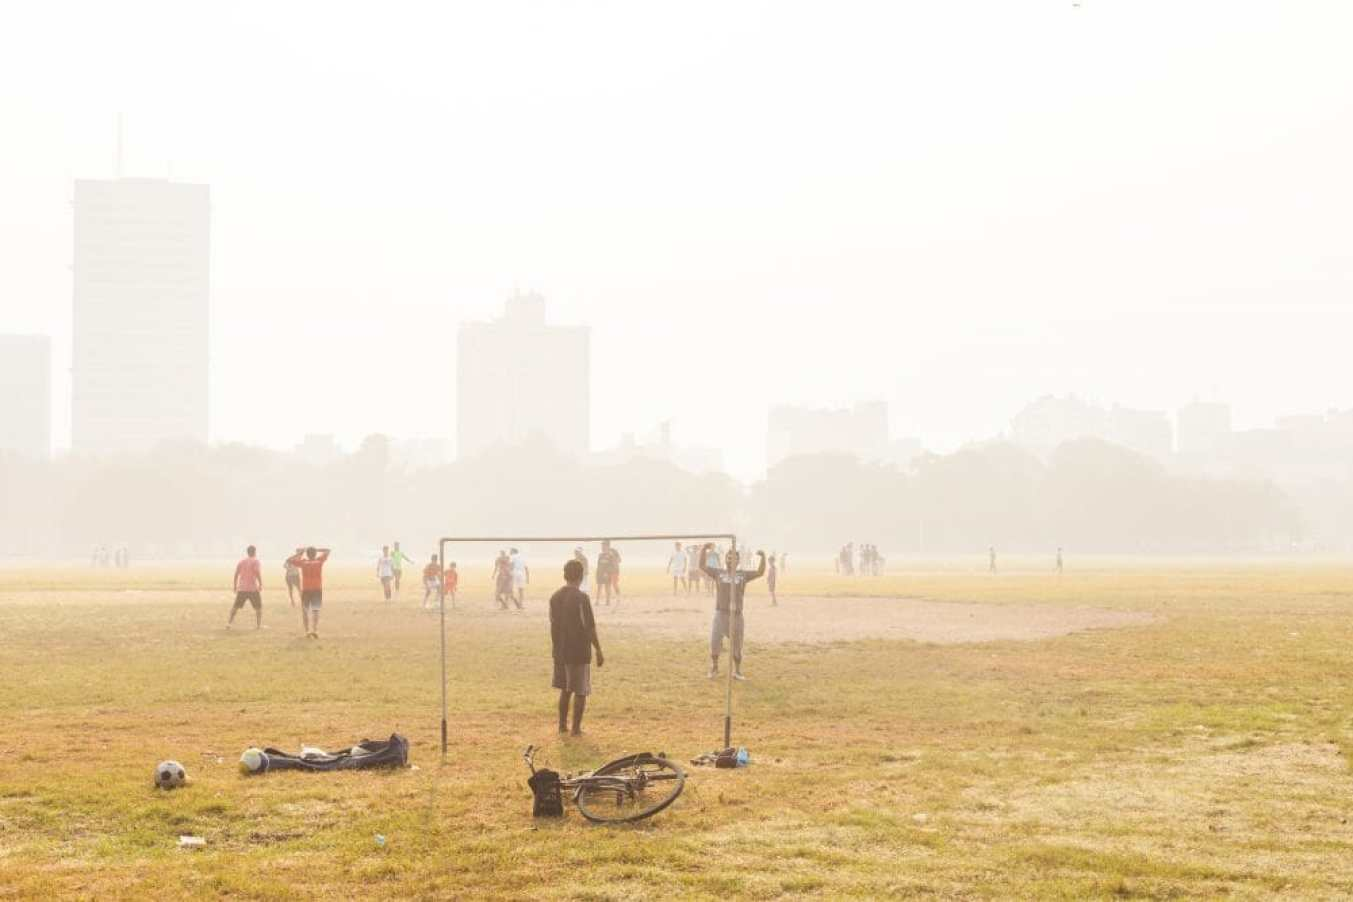 KOLKATA, INDIA - 22 Oct 2016: Boys play soccer on the Maidan on October 22, 2016 in Kolkata (Calcutta), India